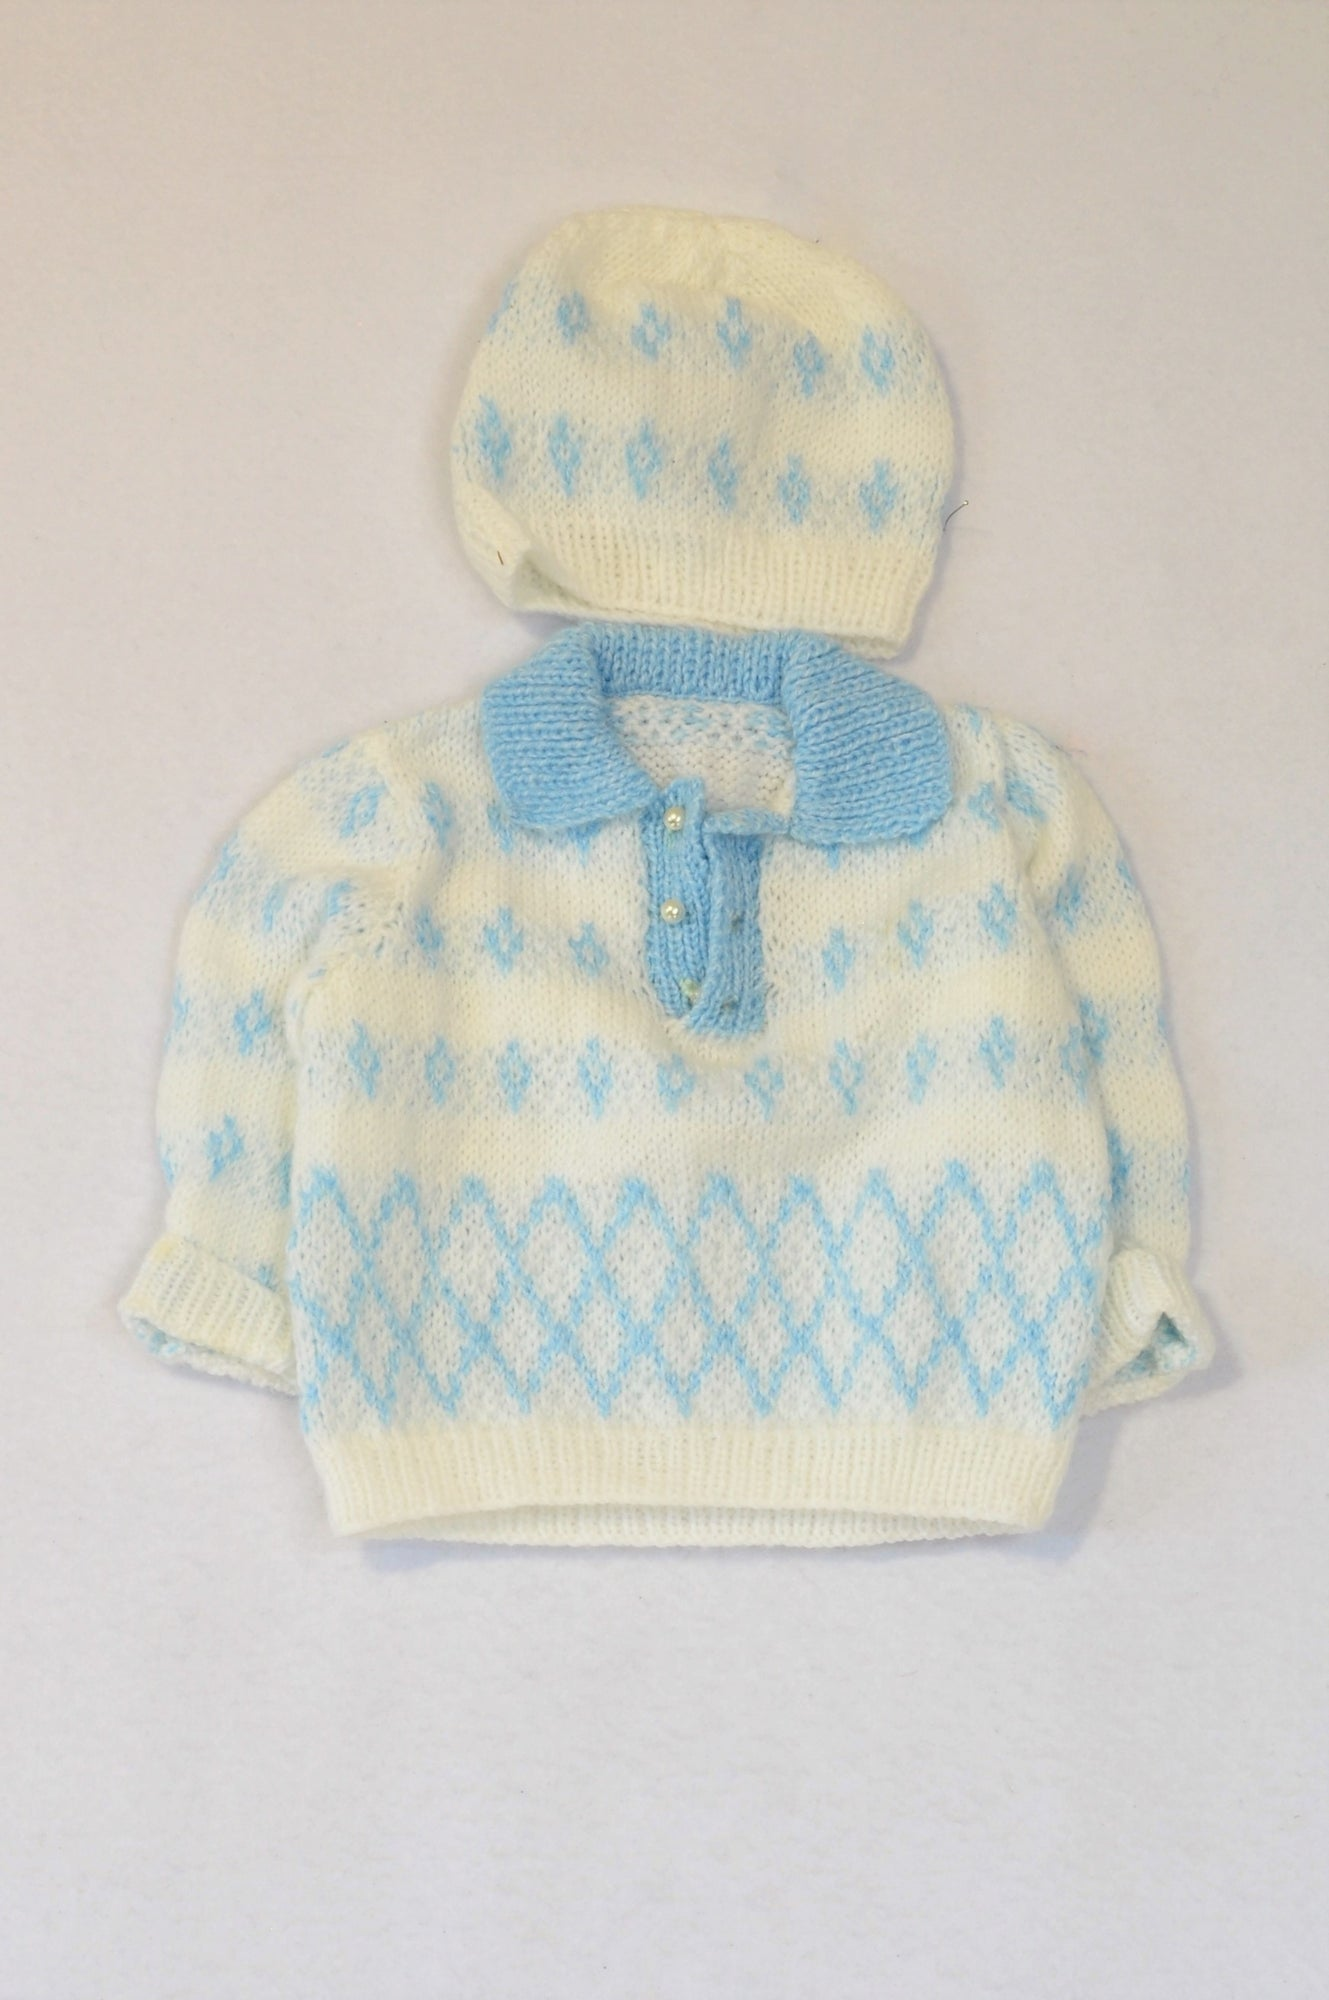 Unbranded White & Blue Knitted Beanie & Jersey Unisex 3-6 months